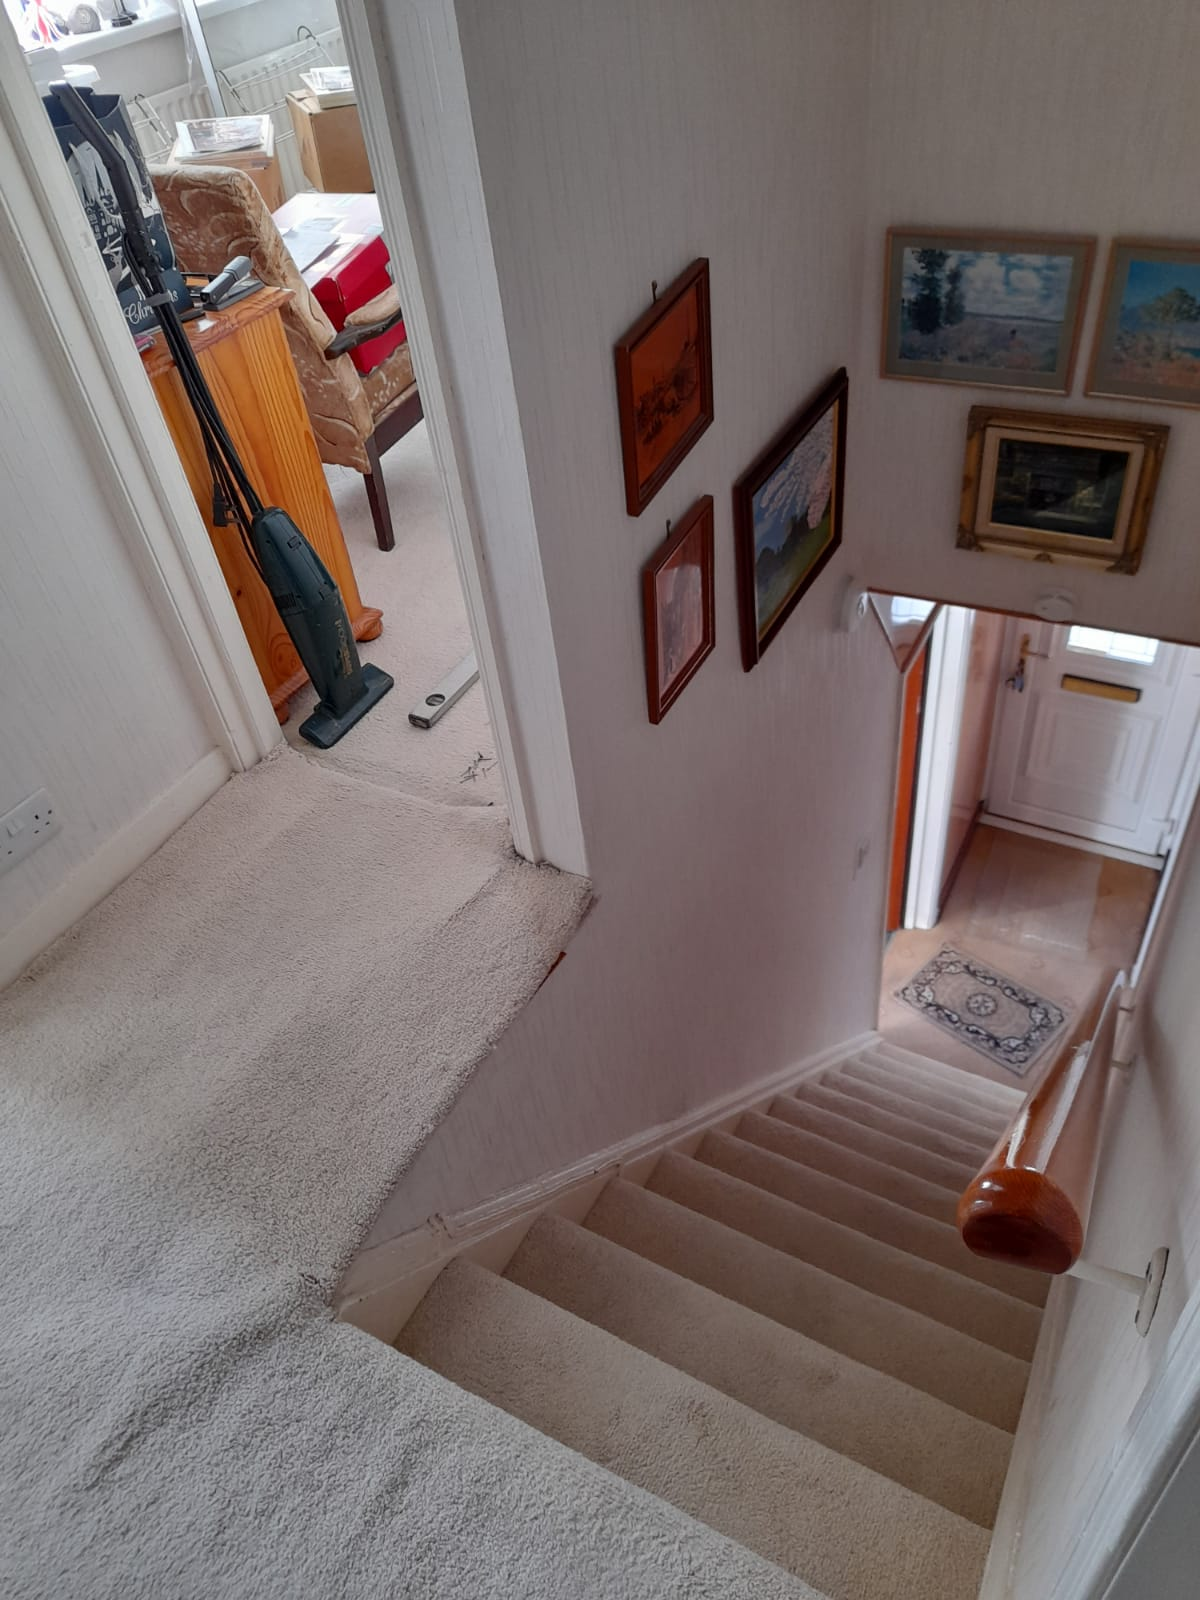 Home with no barrier at side of stairs - fall risk